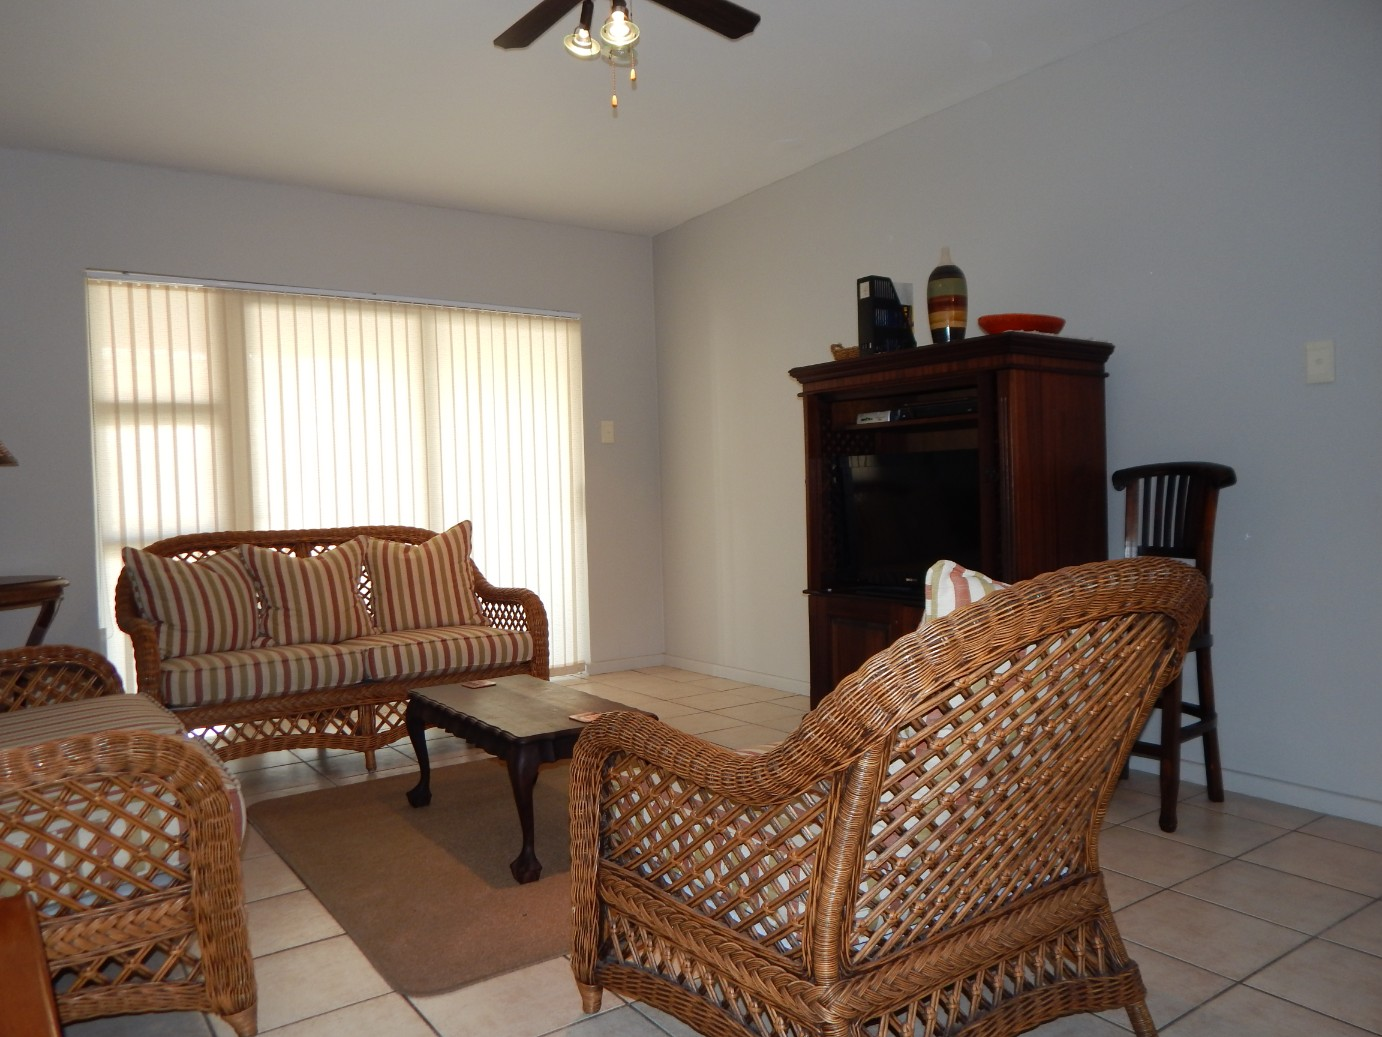 3 Bedroom Apartment for sale in Diaz Beach ENT0080239 : photo#2